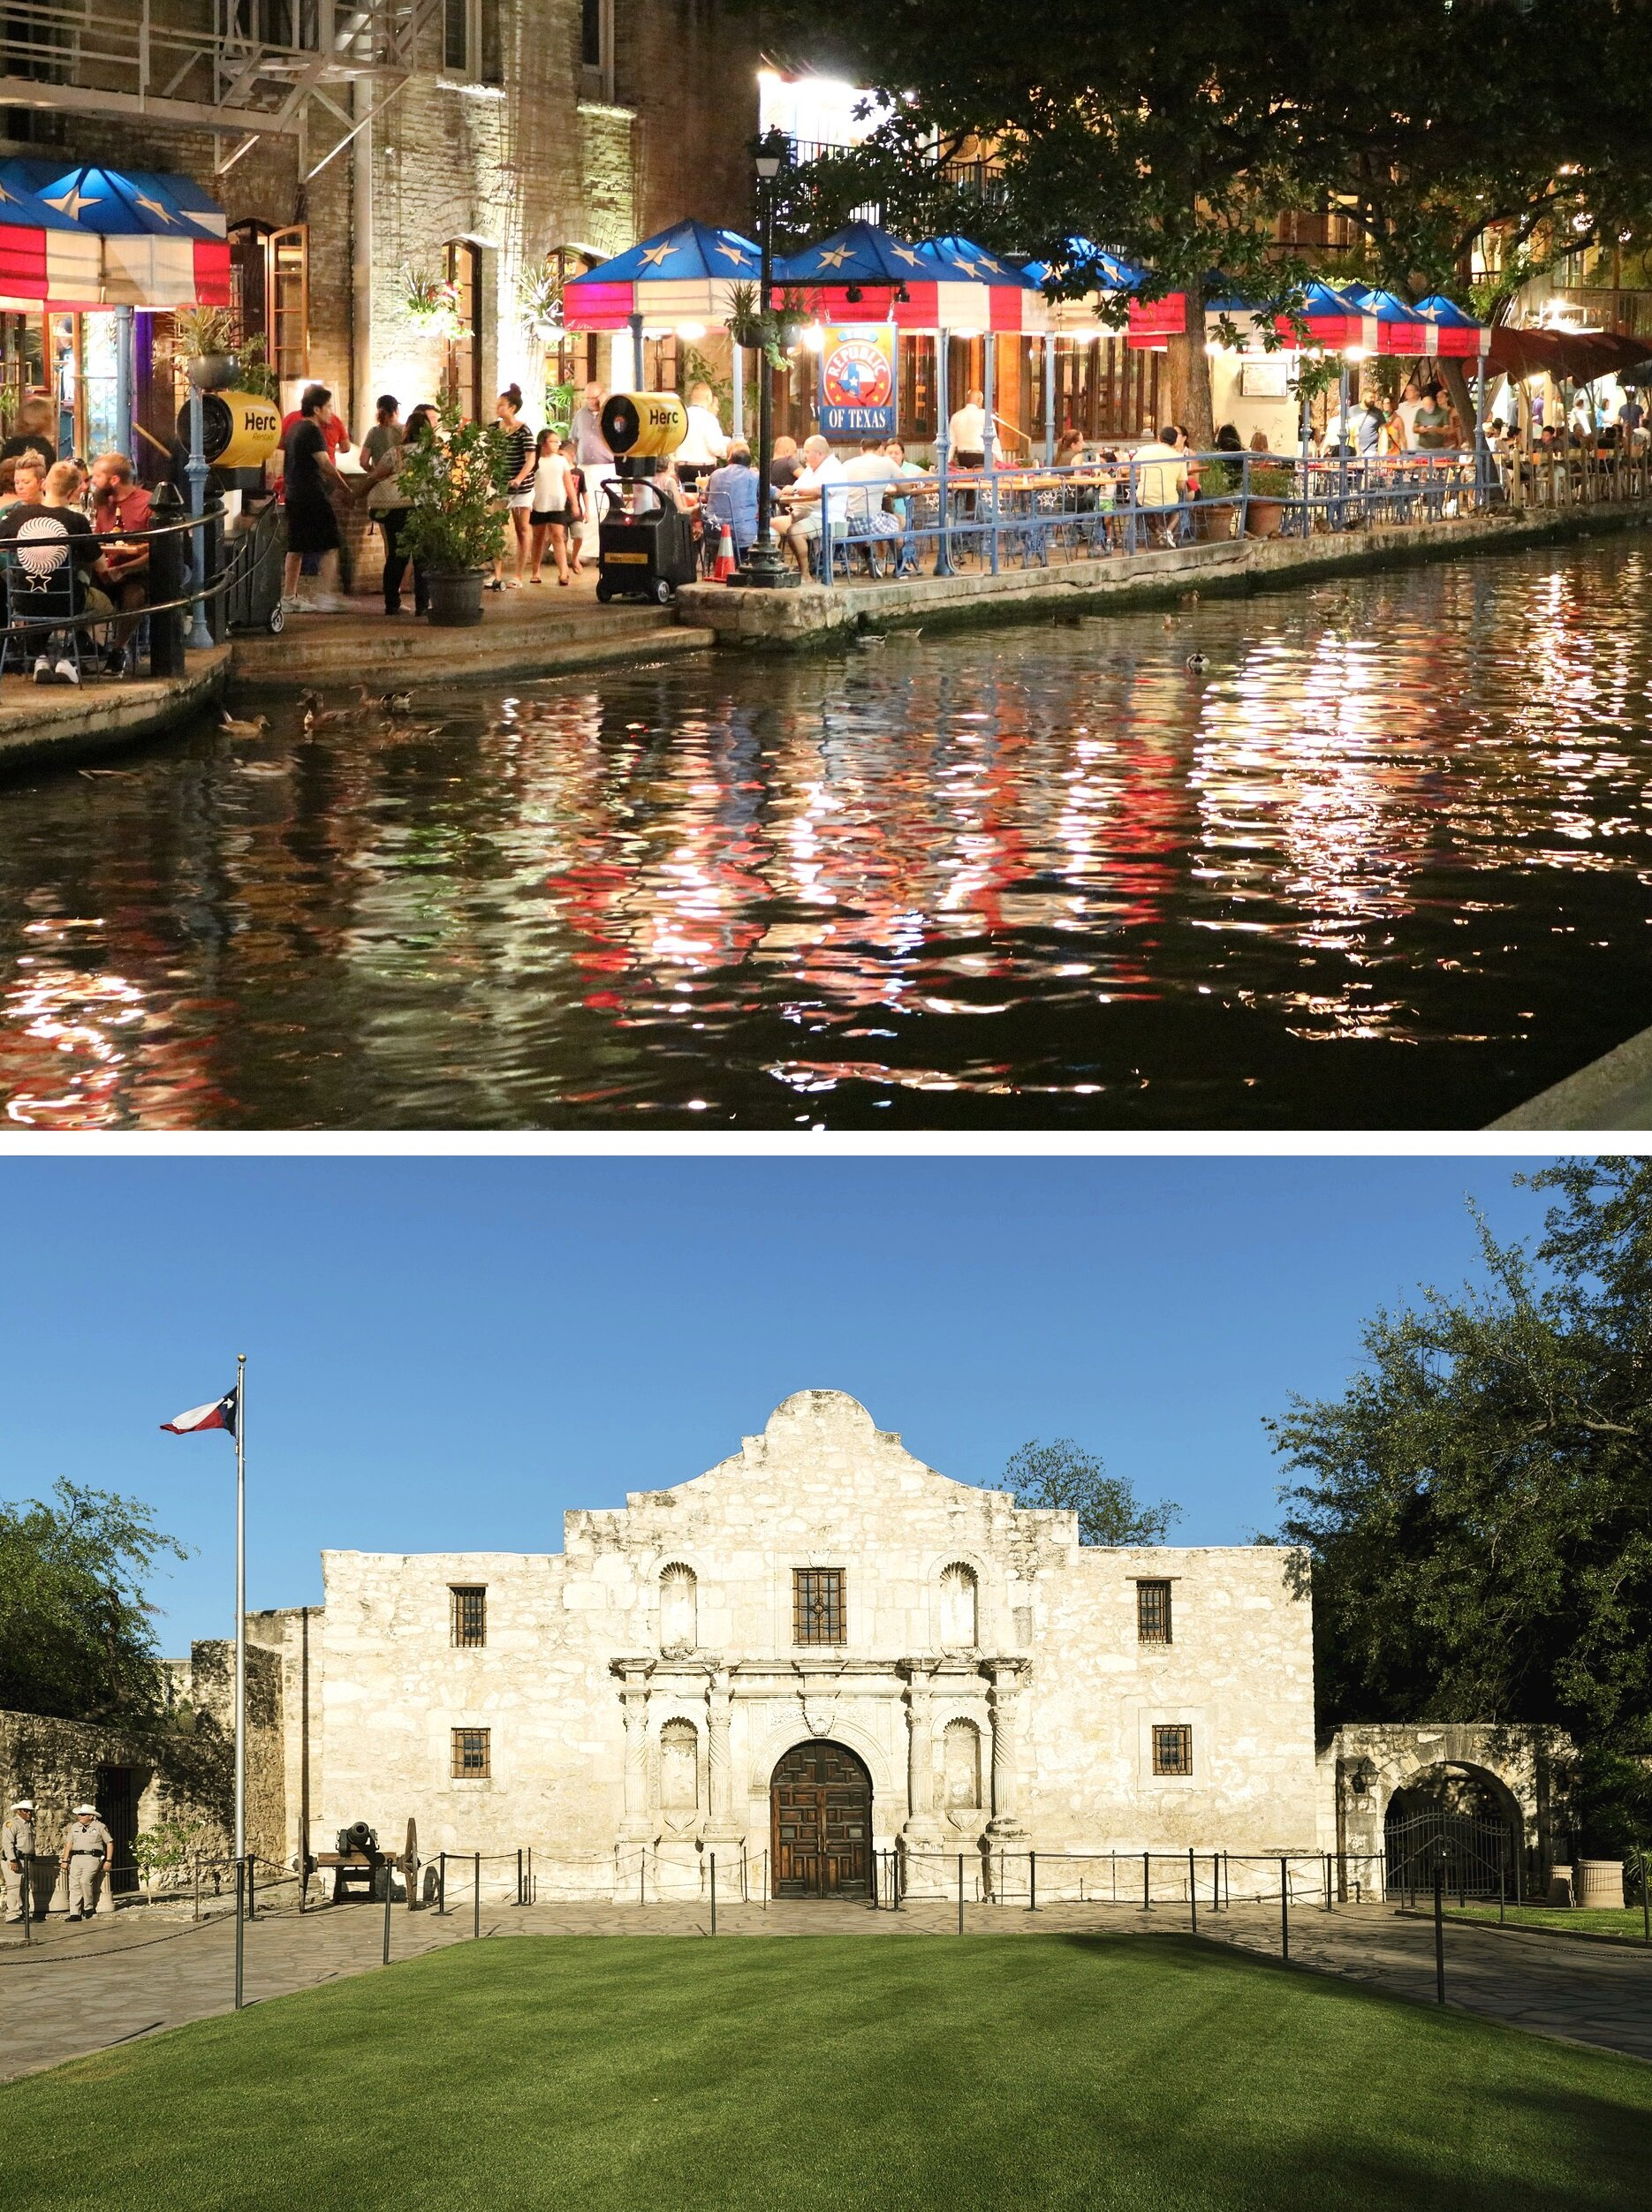 Upper: San Antonio Riverwalk. Lower: The Alamo